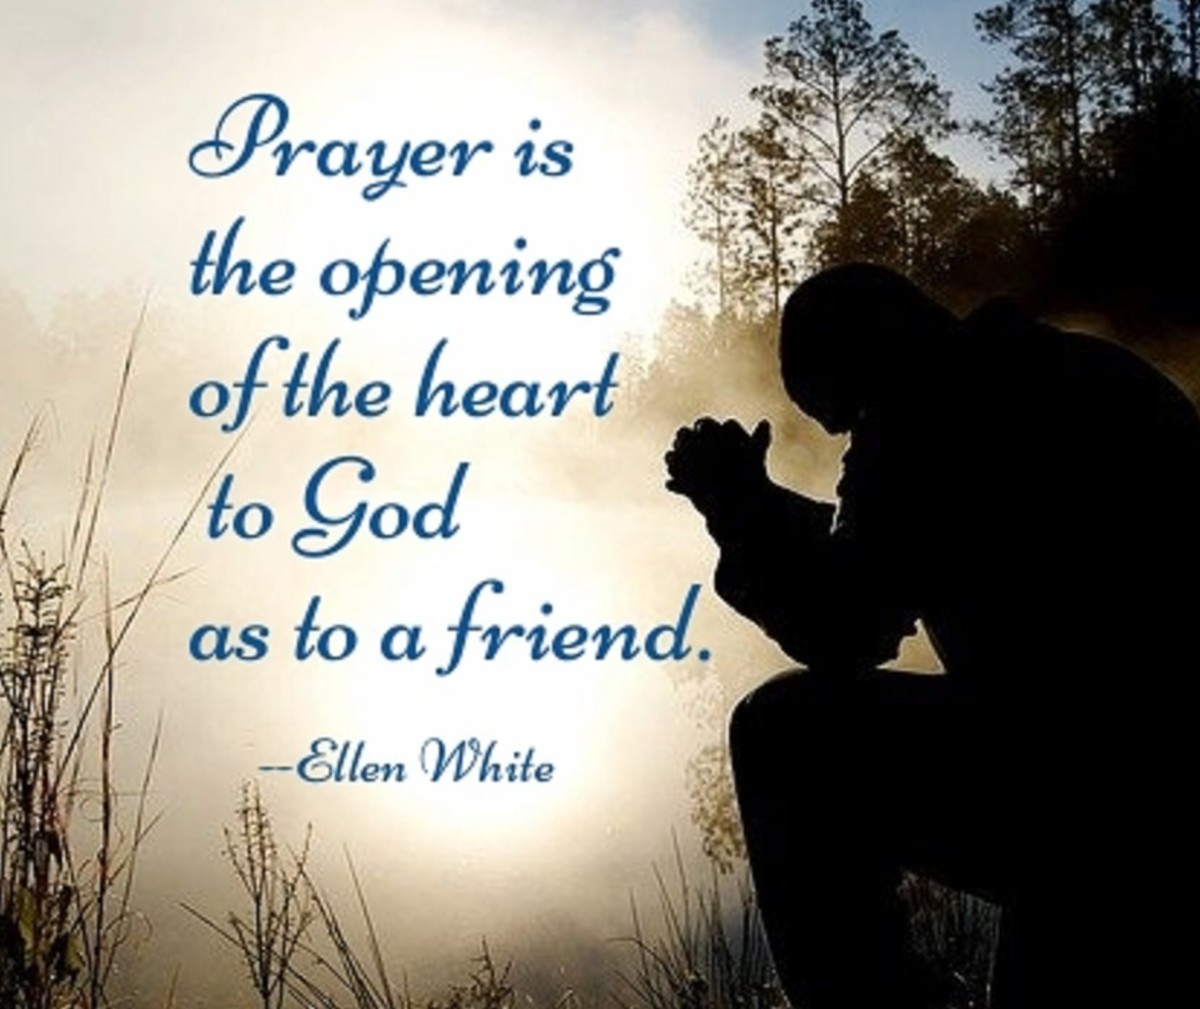 Pray-ers share their innermost thoughts with God.